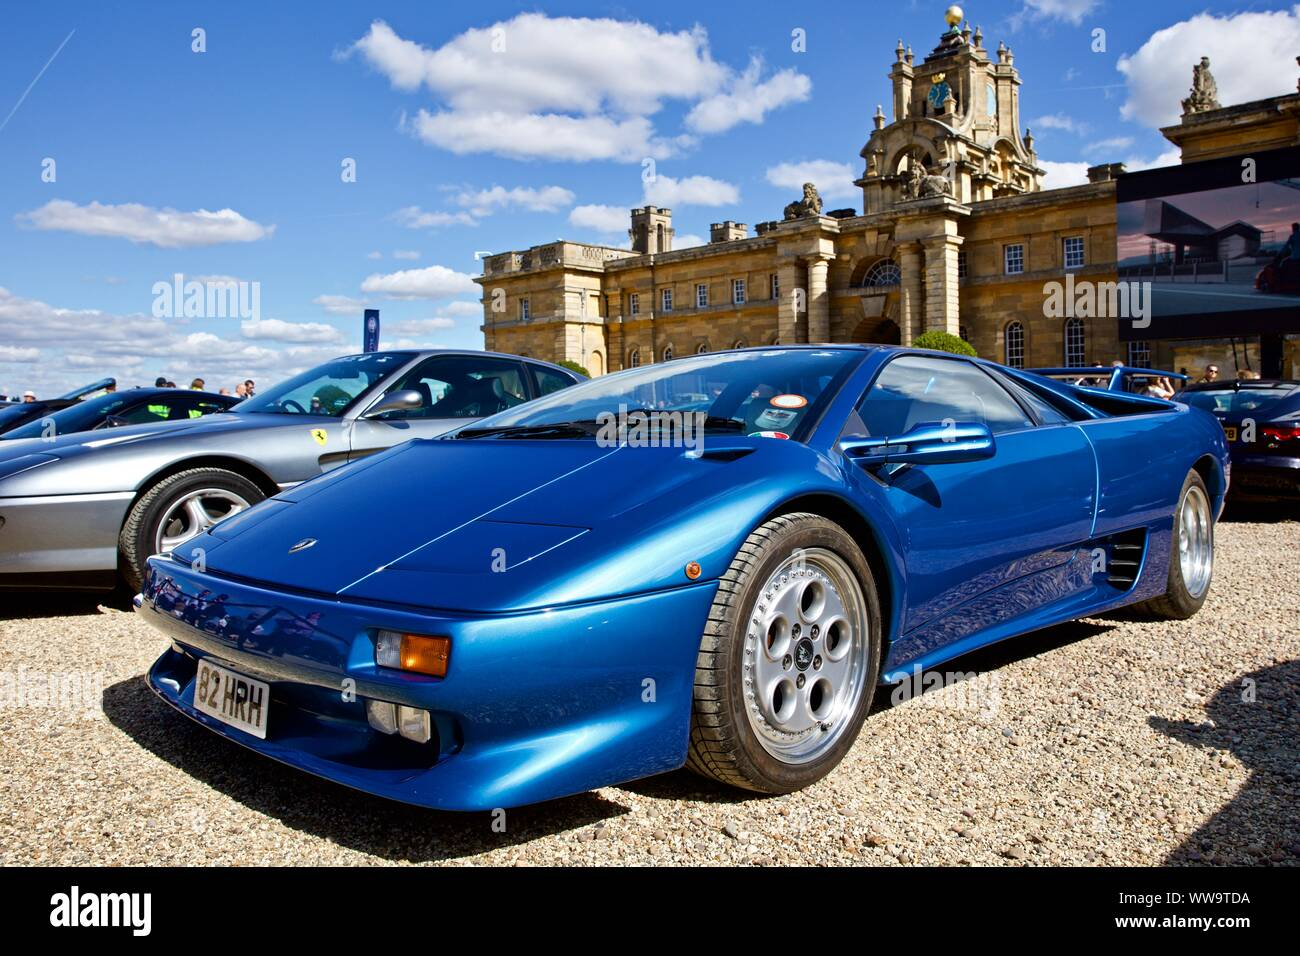 Lamborghini Diablo High Resolution Stock Photography And Images Alamy